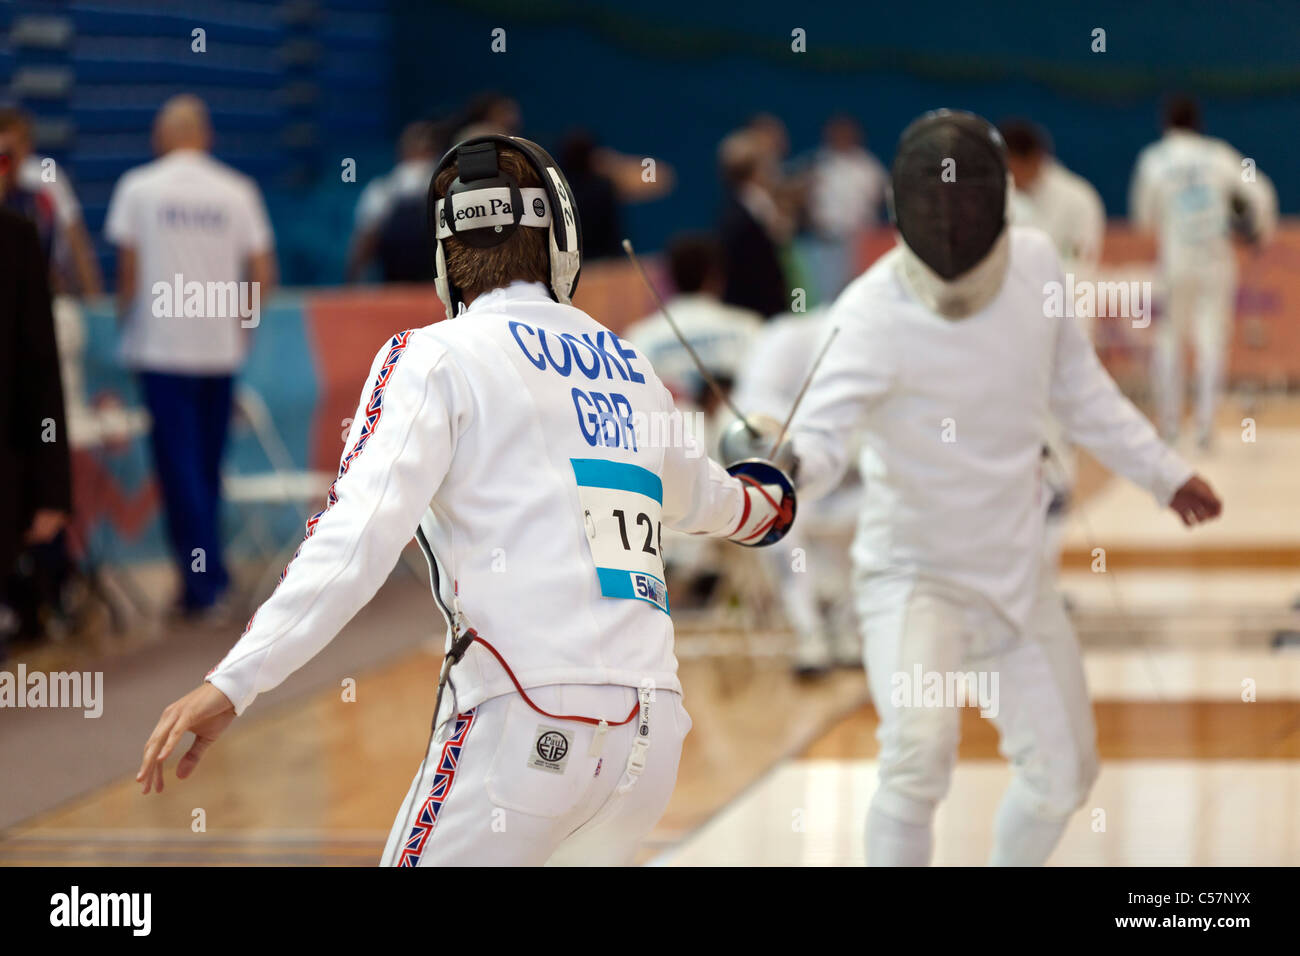 The Fencing Event at the 2011 Modern Pentathlon UIPM World Cup Final, Crystal Palace, London, UK. - Stock Image